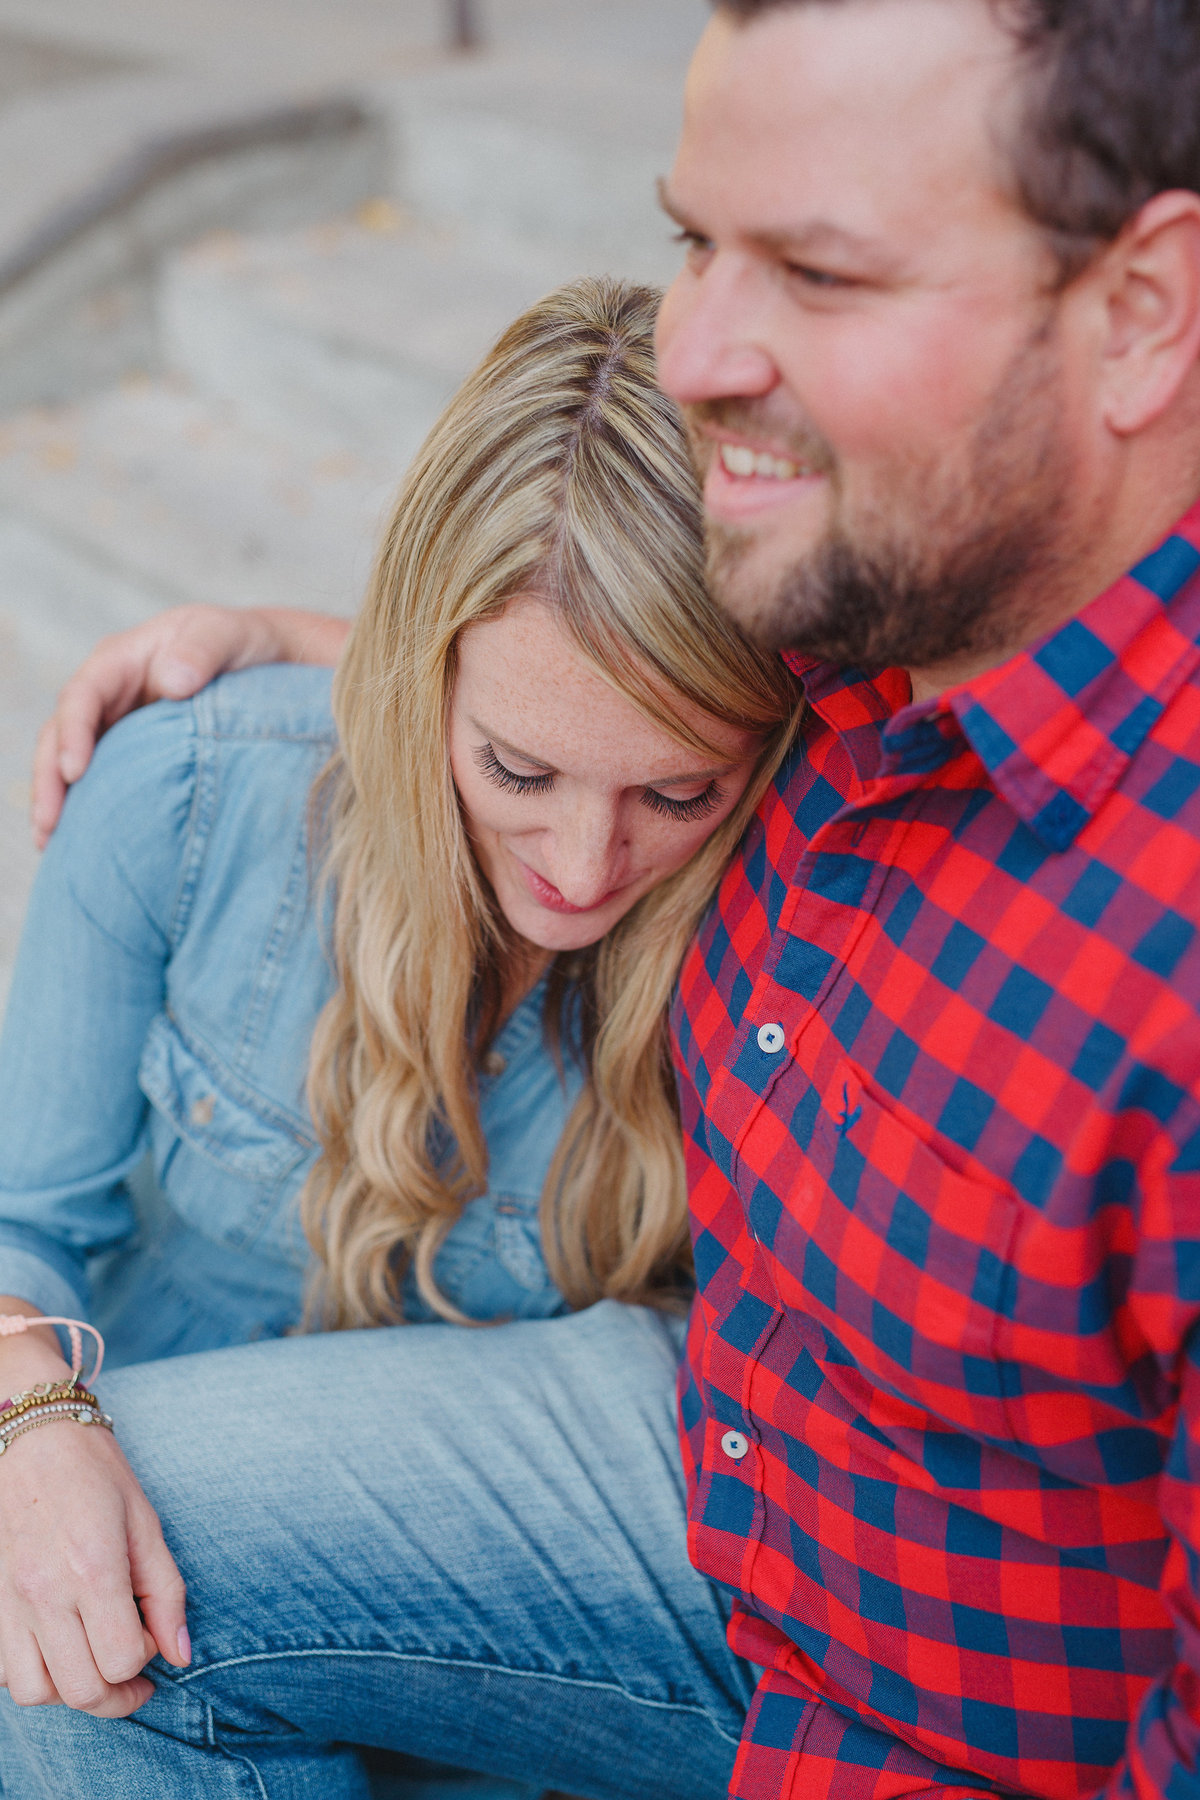 ChrisAndStephanieEngaged_092516_WeeThreeSparrowsPhotography_295